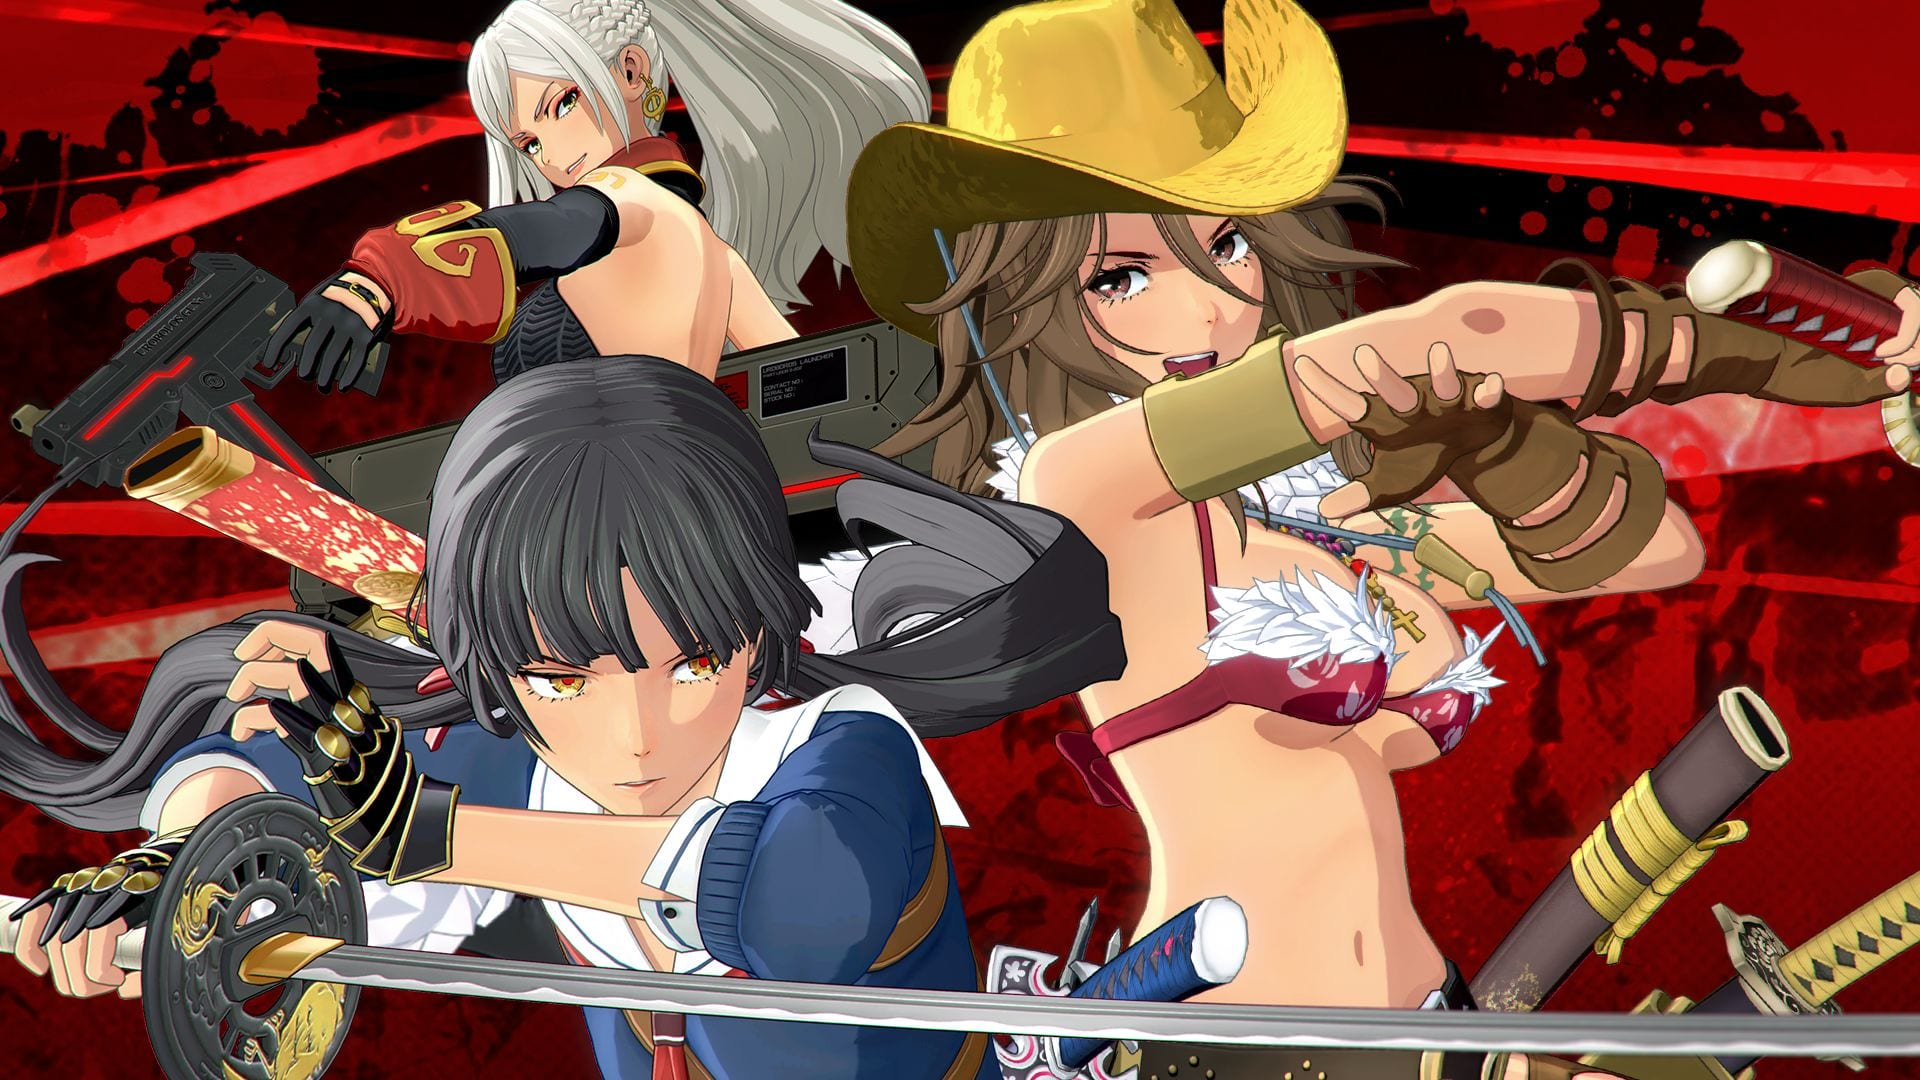 Onee Chanbara Origin Giveaway – Win 1 of 5 PS4 or PC Copies by Sharing Your Feedback 1